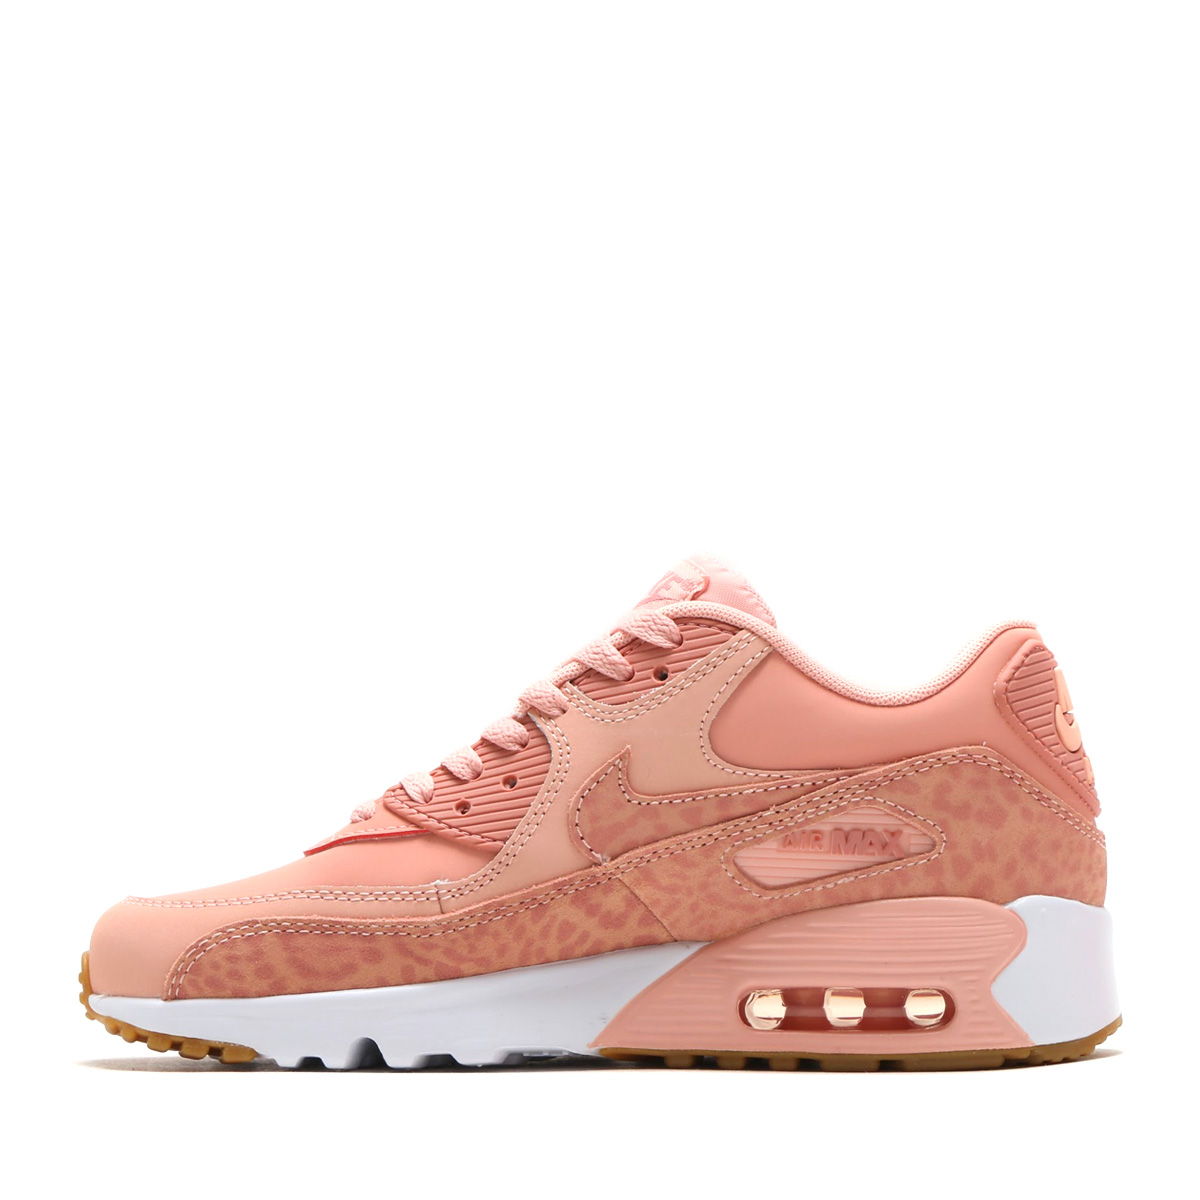 2075ab91beb1 NIKE AIR MAX 90 LTR SE GG (Kie Ney AMAX 90 leather SE GS) (CORAL STARDUST RUST  PINK-WHITE) 18SP-I